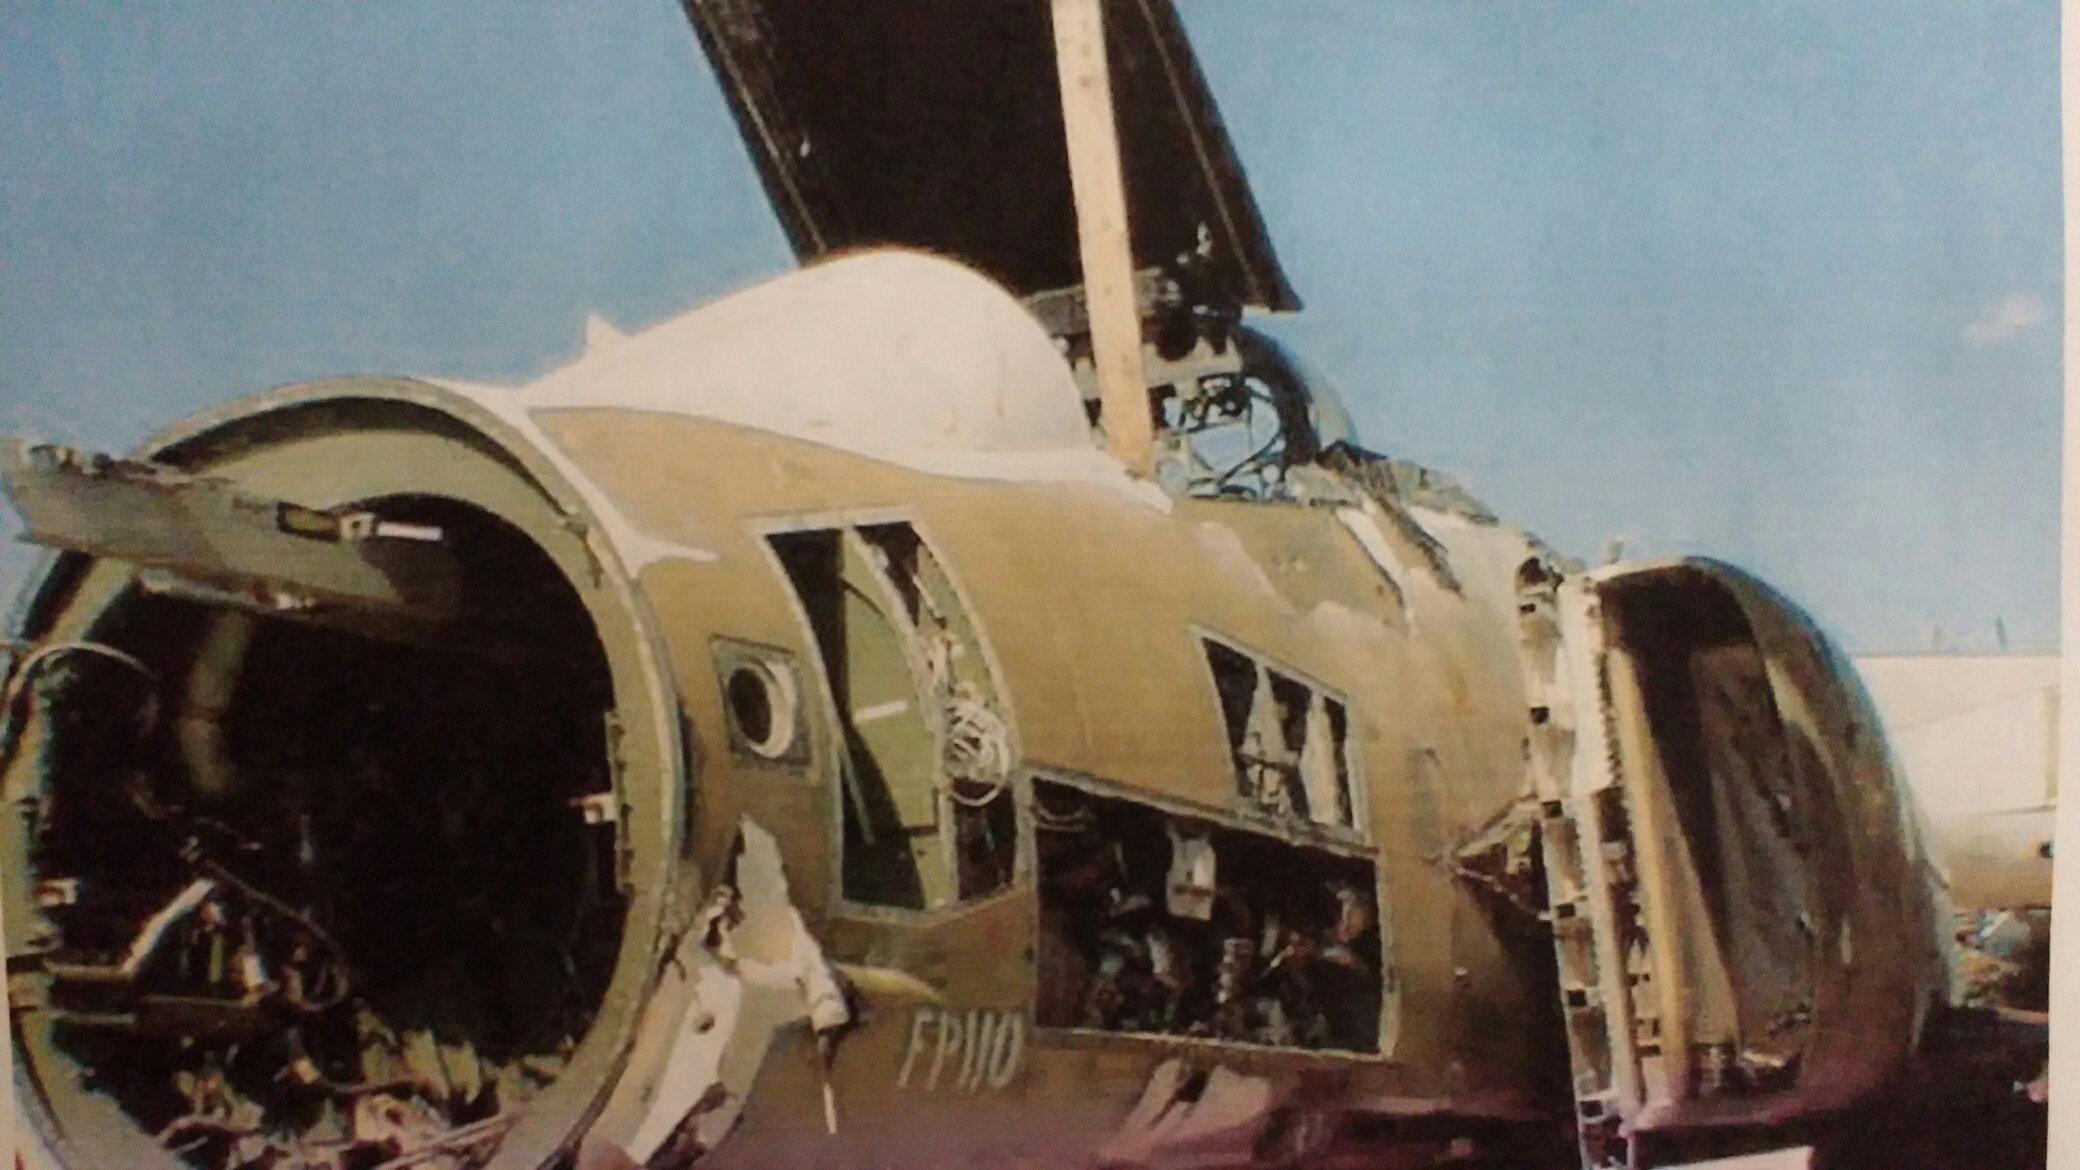 David Garbe's F-4D Phantom II cockpit as it looked when he acquired it in 2006. (photo via David Garbe)